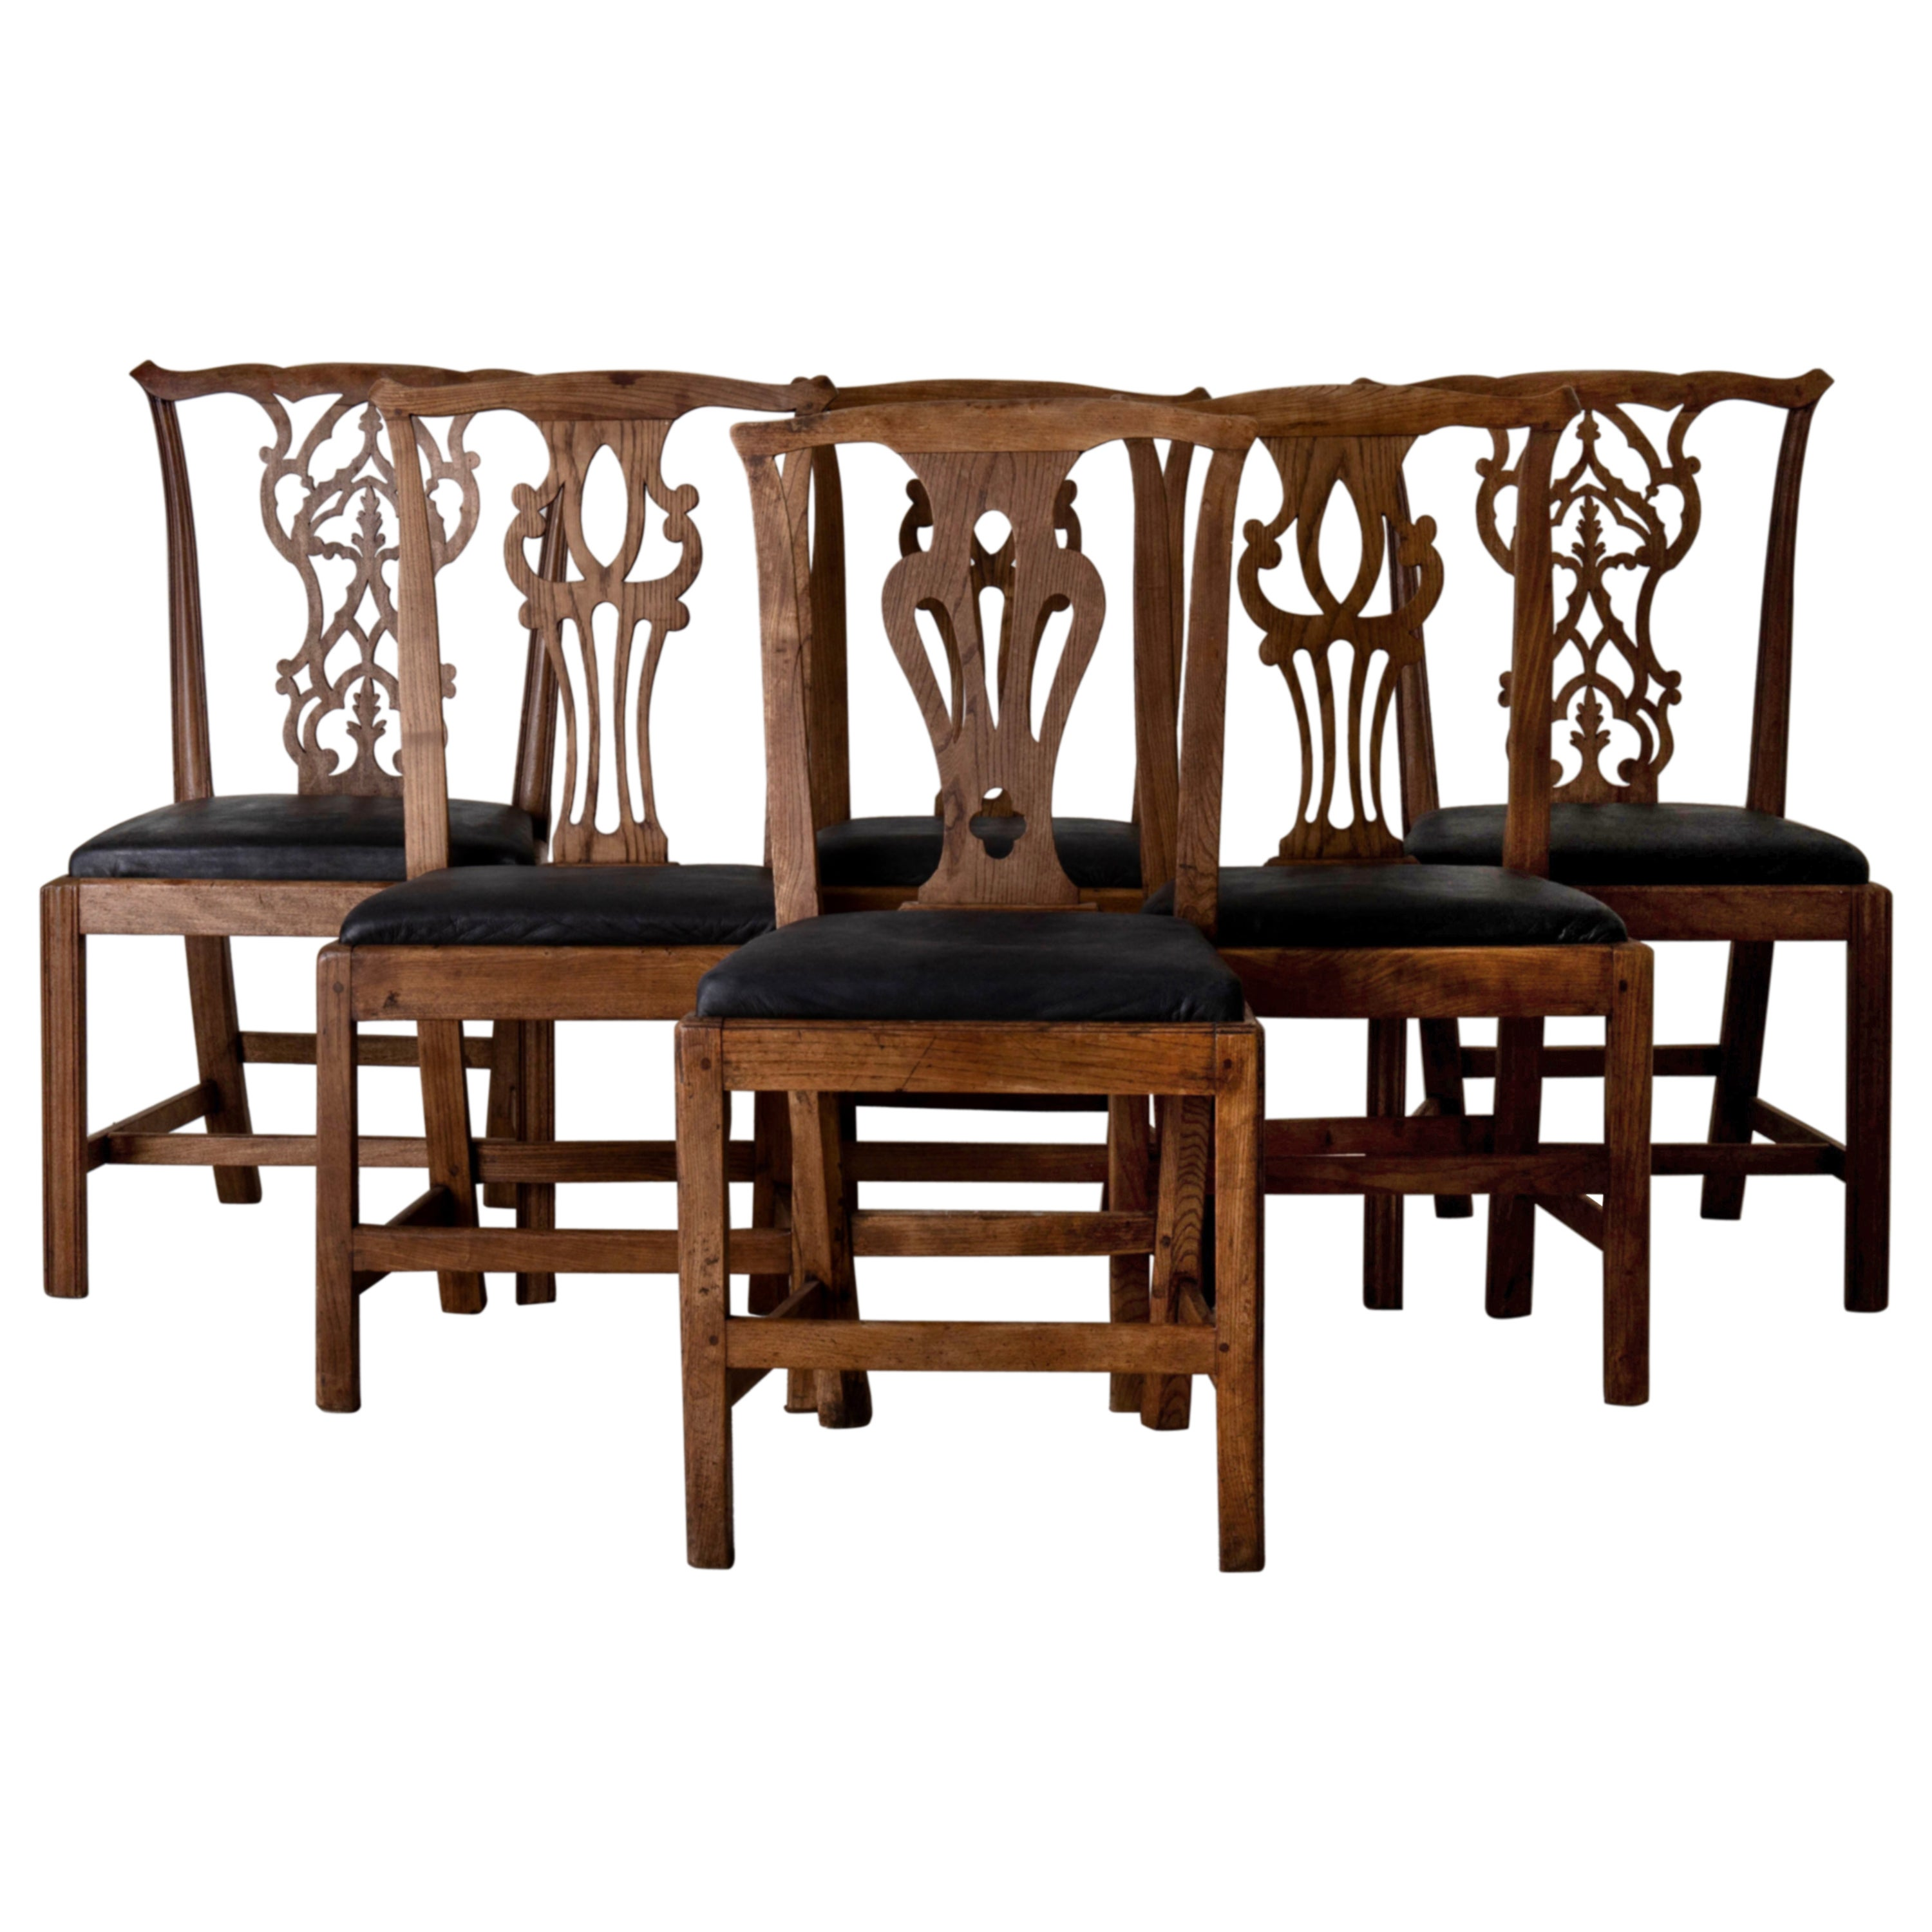 Dining Chairs English Set of 6 Assembled Chippendale England